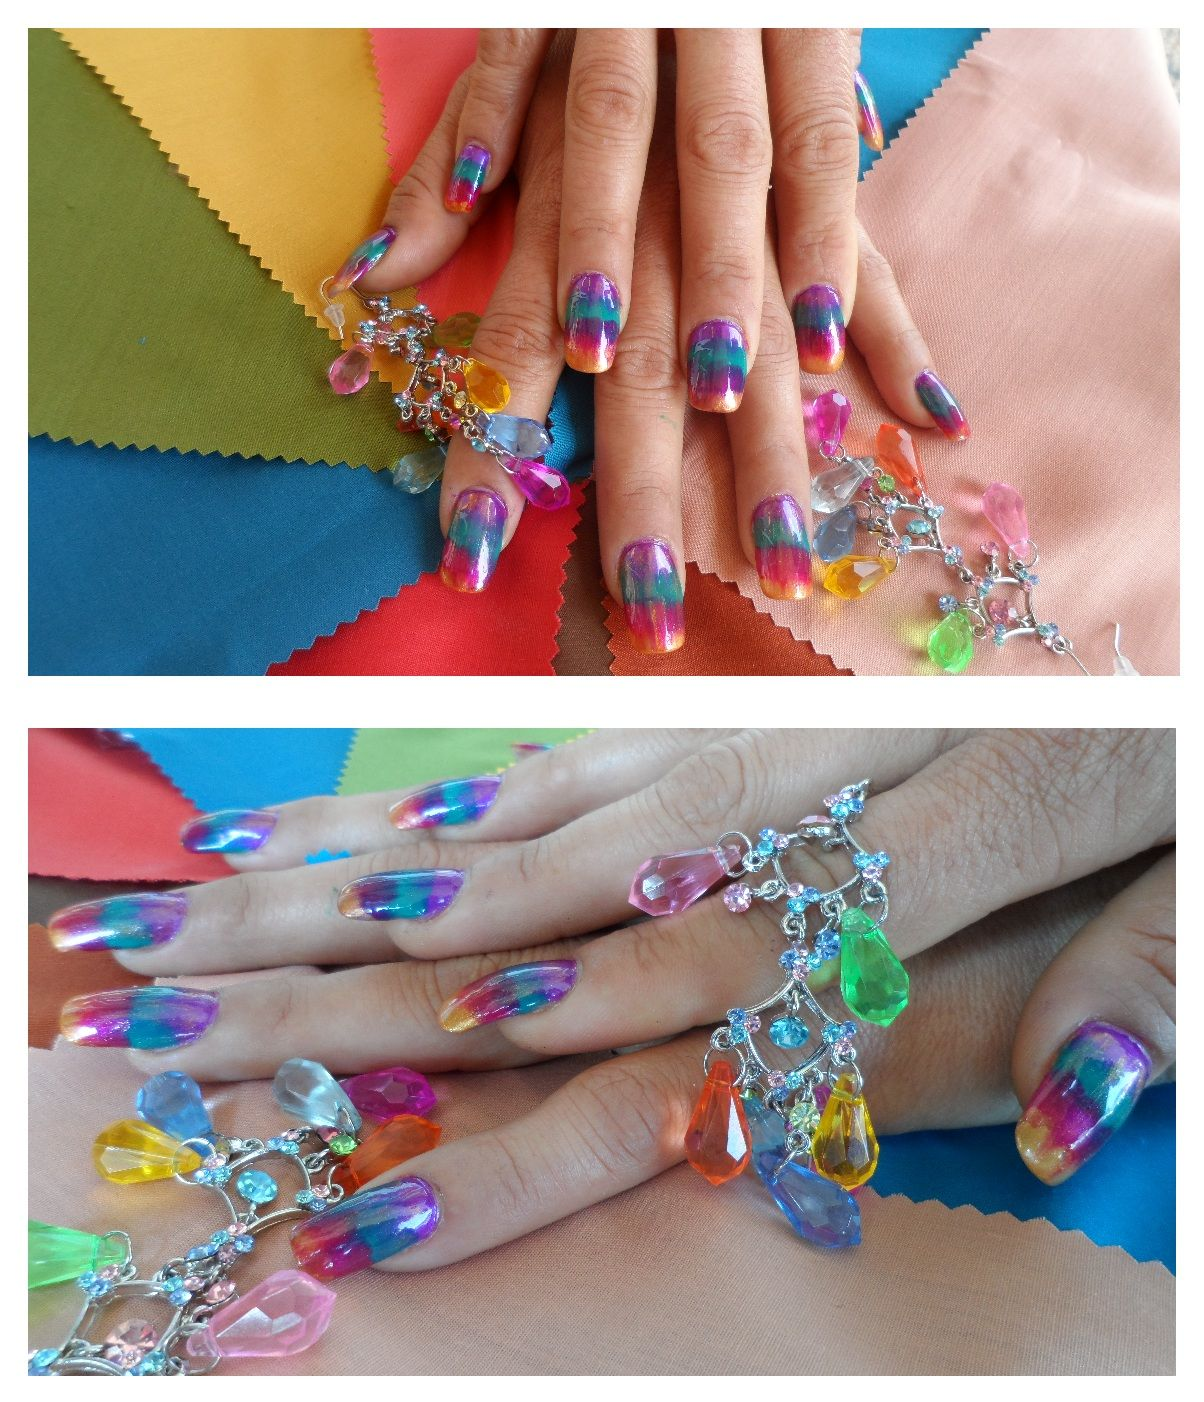 NAIL ART done by students at our South Austin campus. For